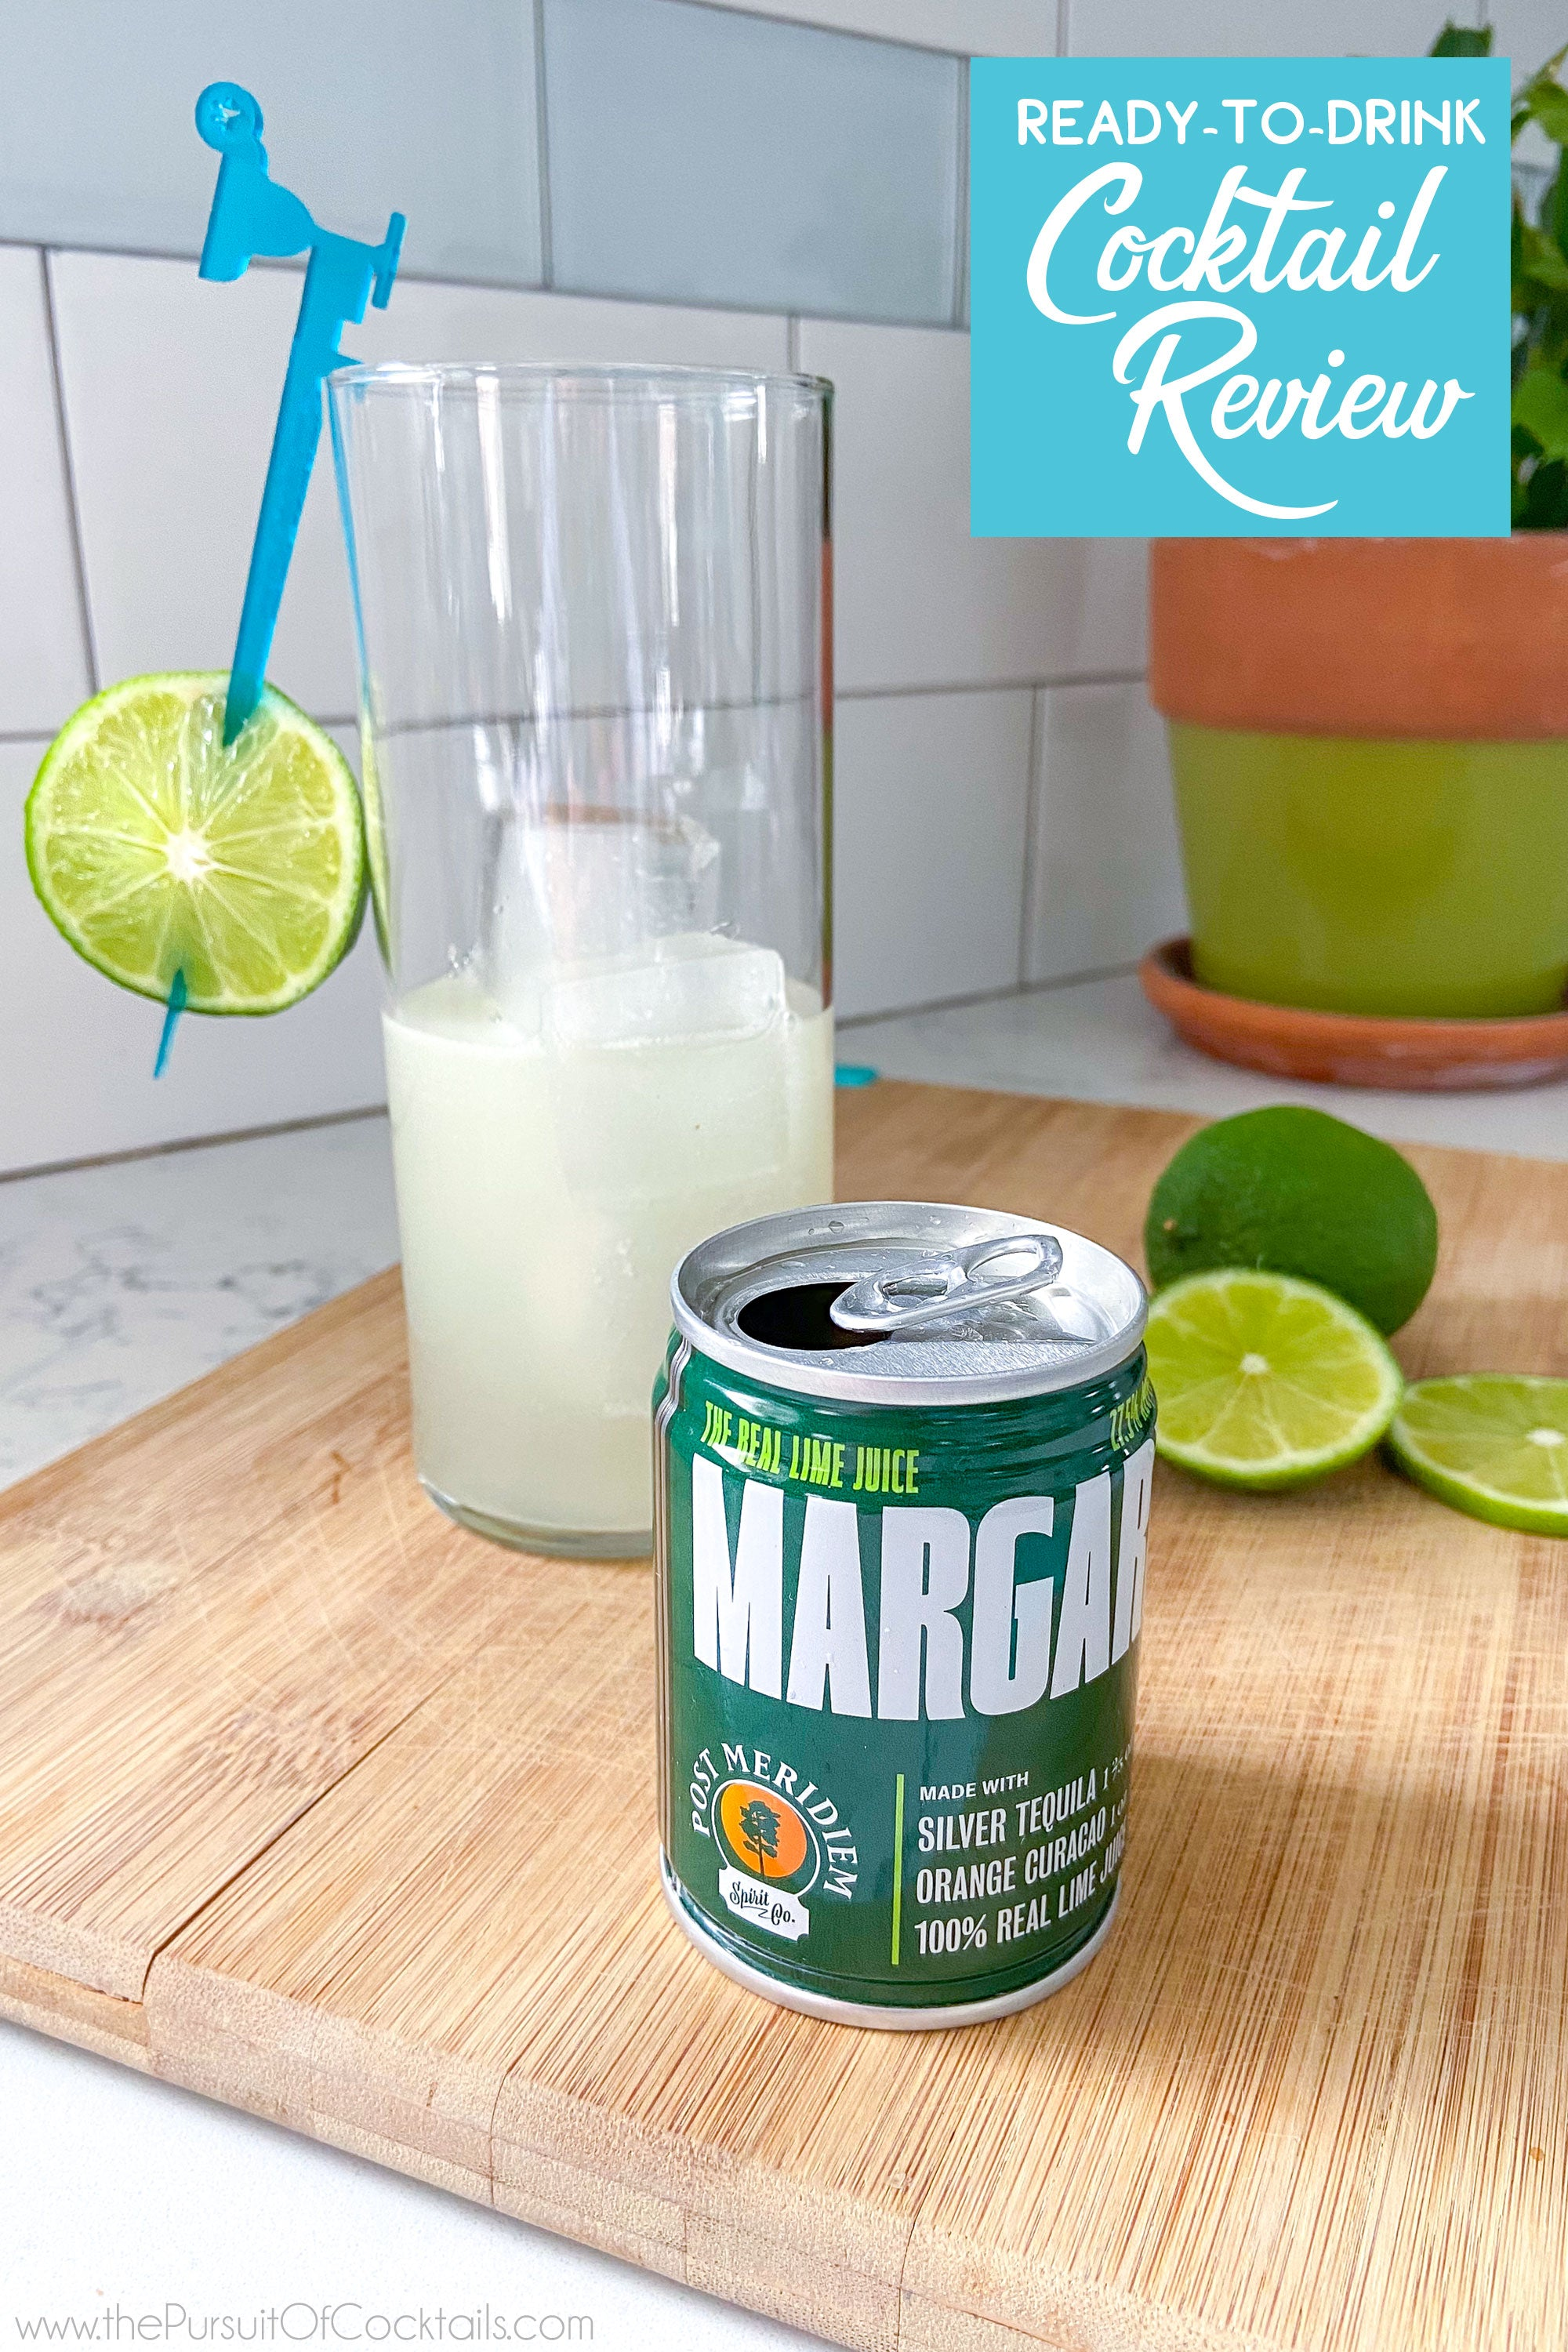 Ready-to-drink margarita review of Post Merideim canned cocktail by The Pursuit of Cocktails